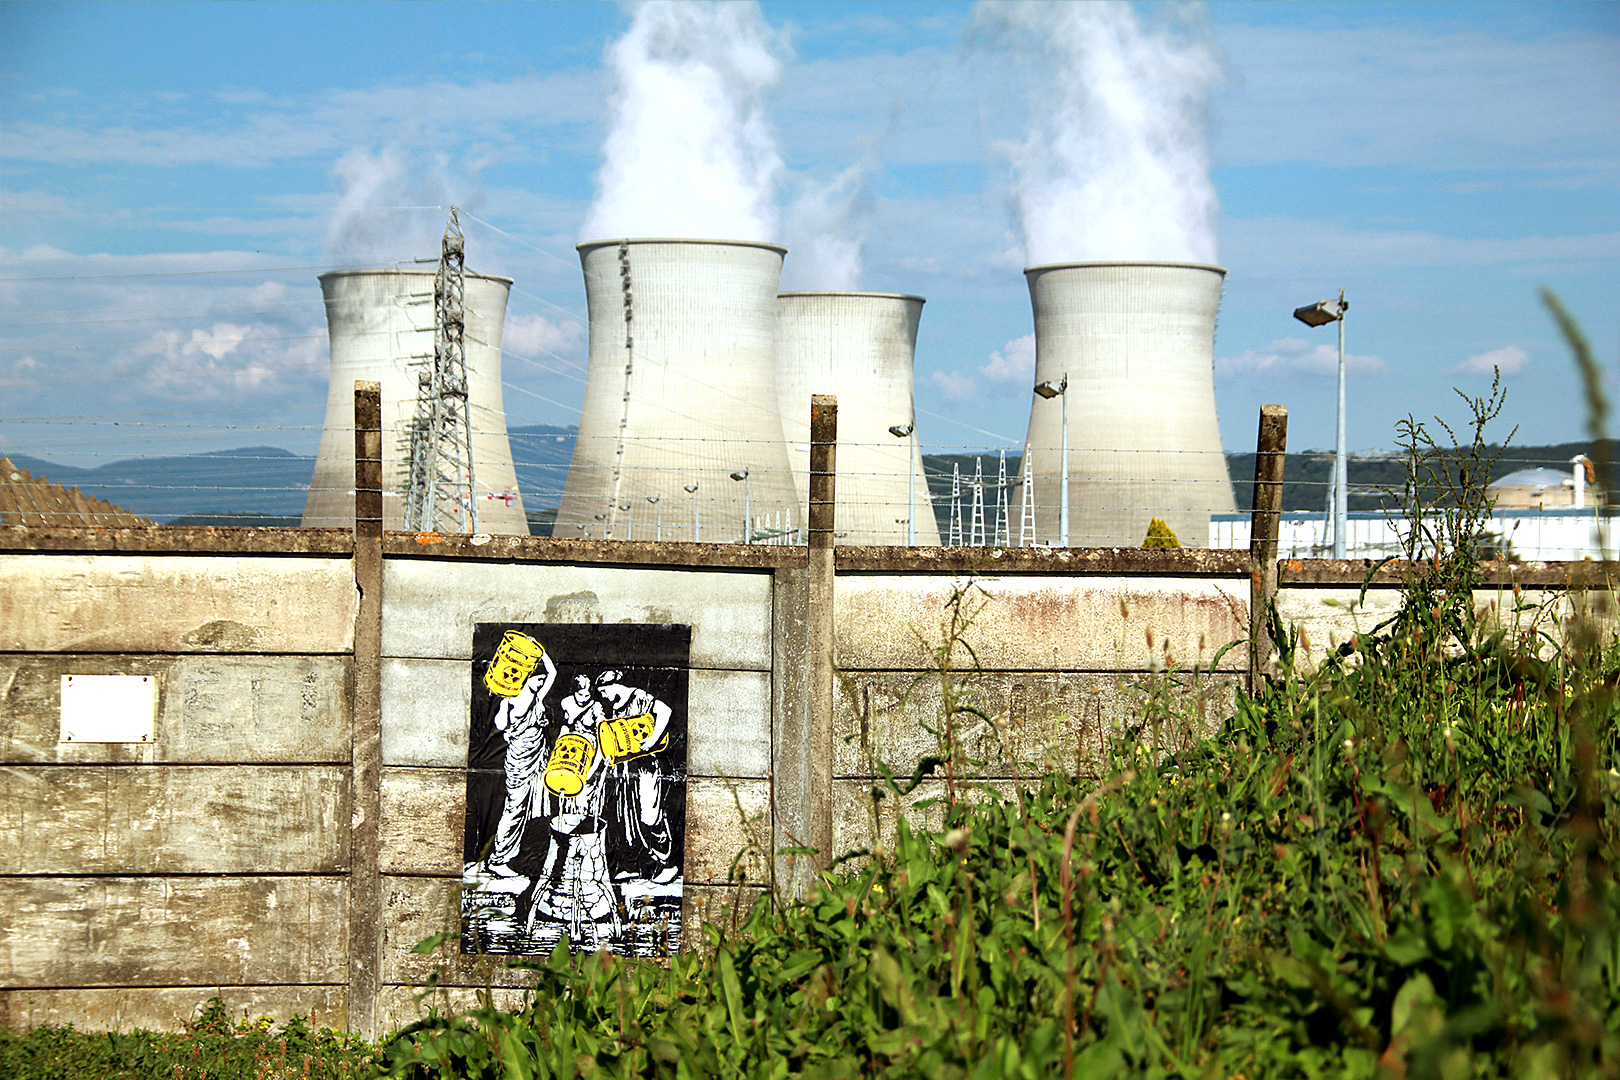 Goin - FUKUSHIMA DANAIDS - Bugey Power Plant - France 2014